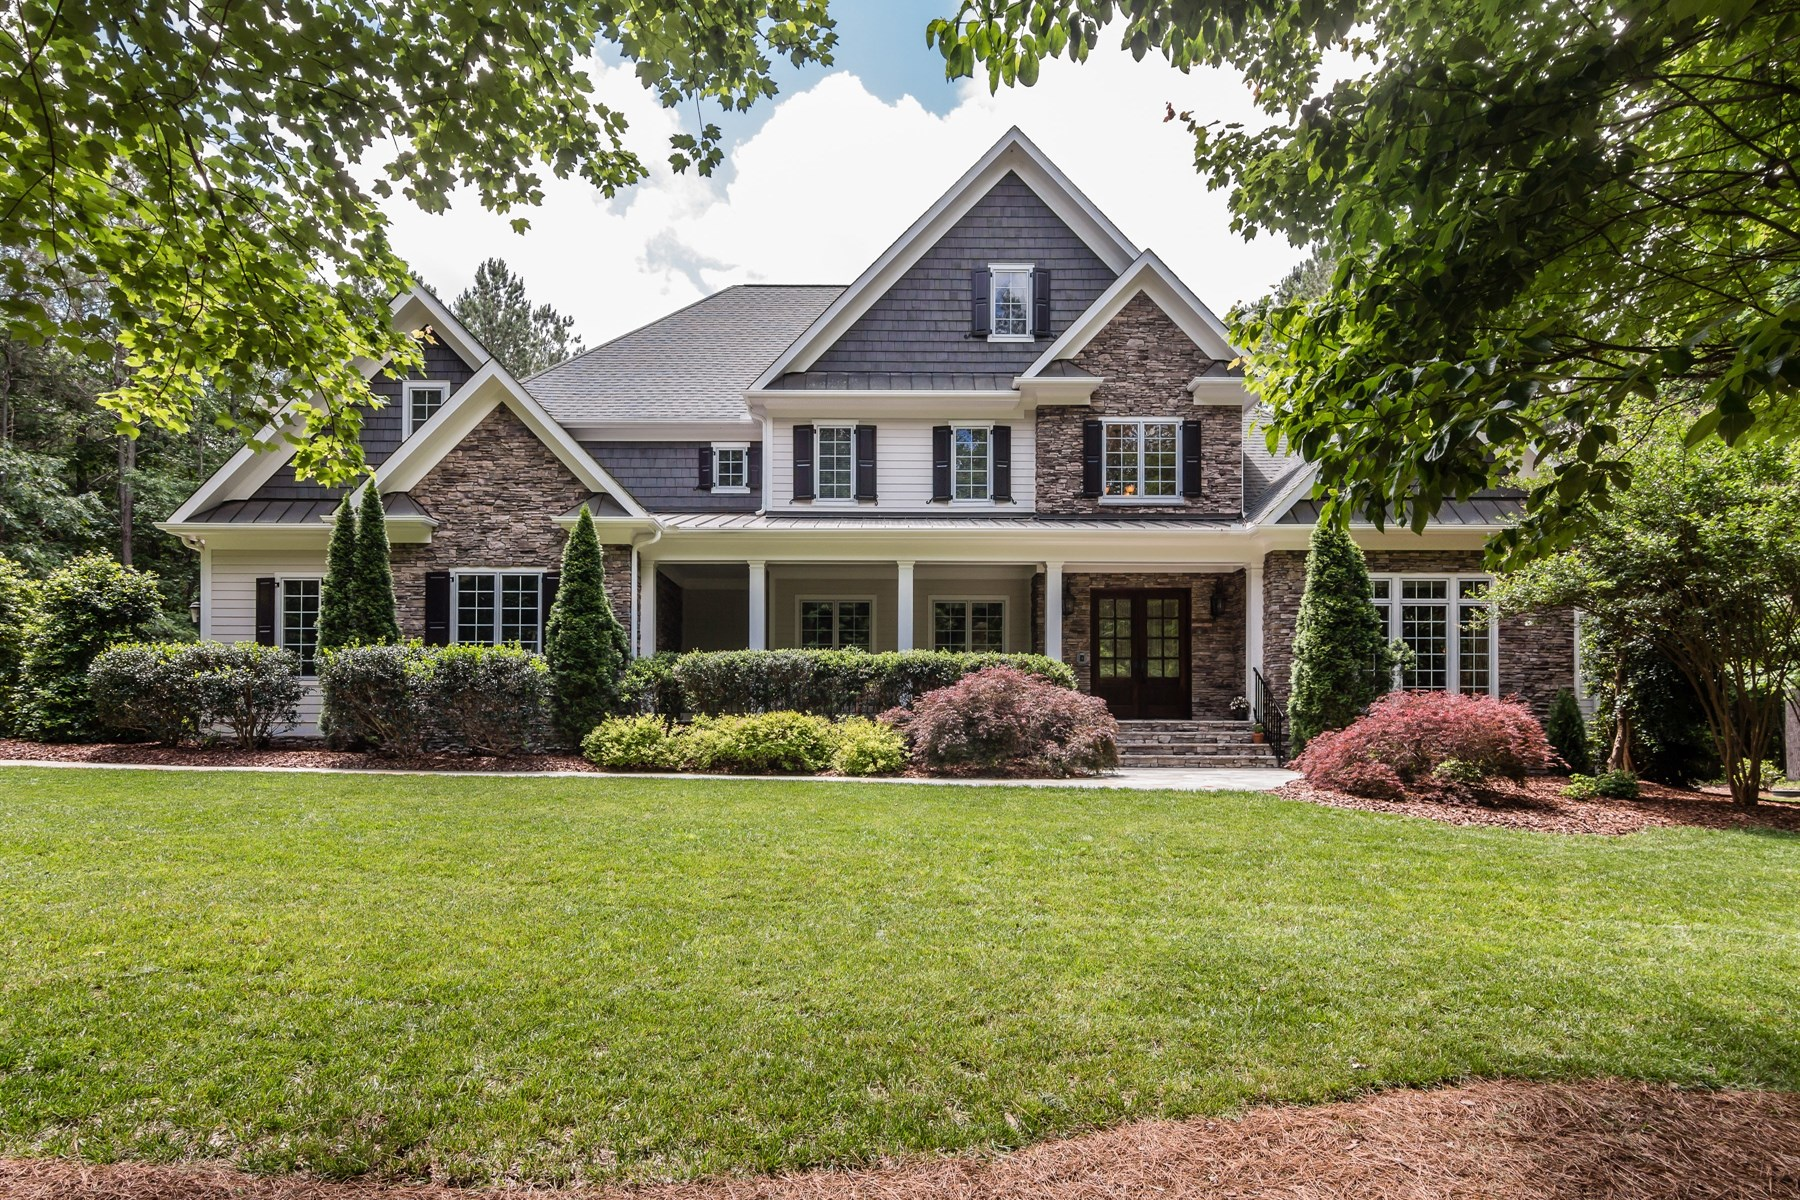 Single Family Home for Sale at The Estates of Coles Crossing 125 Old Legacy Lane Chapel Hill, North Carolina, 27516 United StatesIn/Around: Cary, Durham, Raleigh